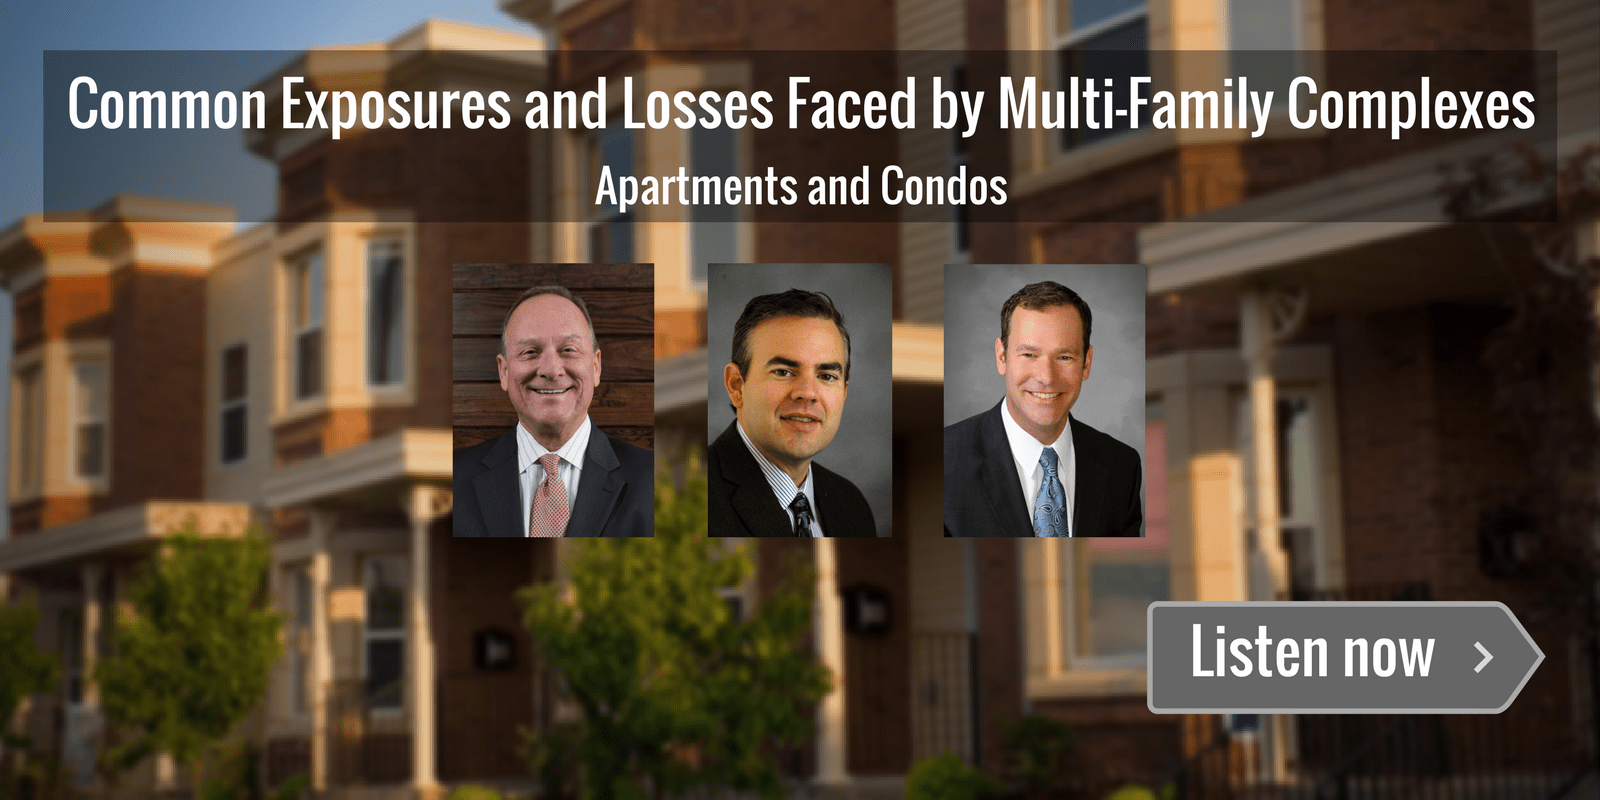 Multi-Family Complexes Apartments and Condos Exposures Losses